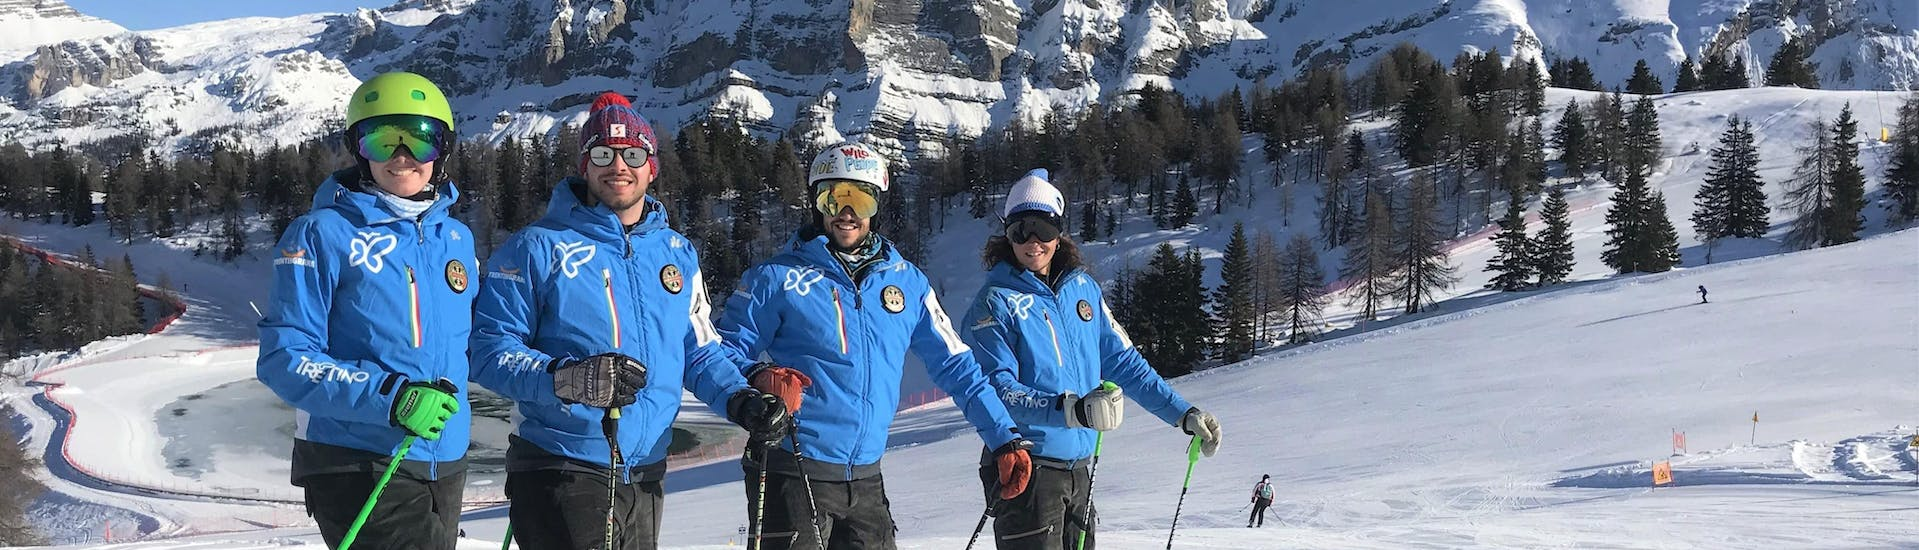 Some instructors of the ski school Scuola di Sci Pinzolo are smiling at the camera before heading to the slopes and give private and group lessons in the Val Rendena ski resort.